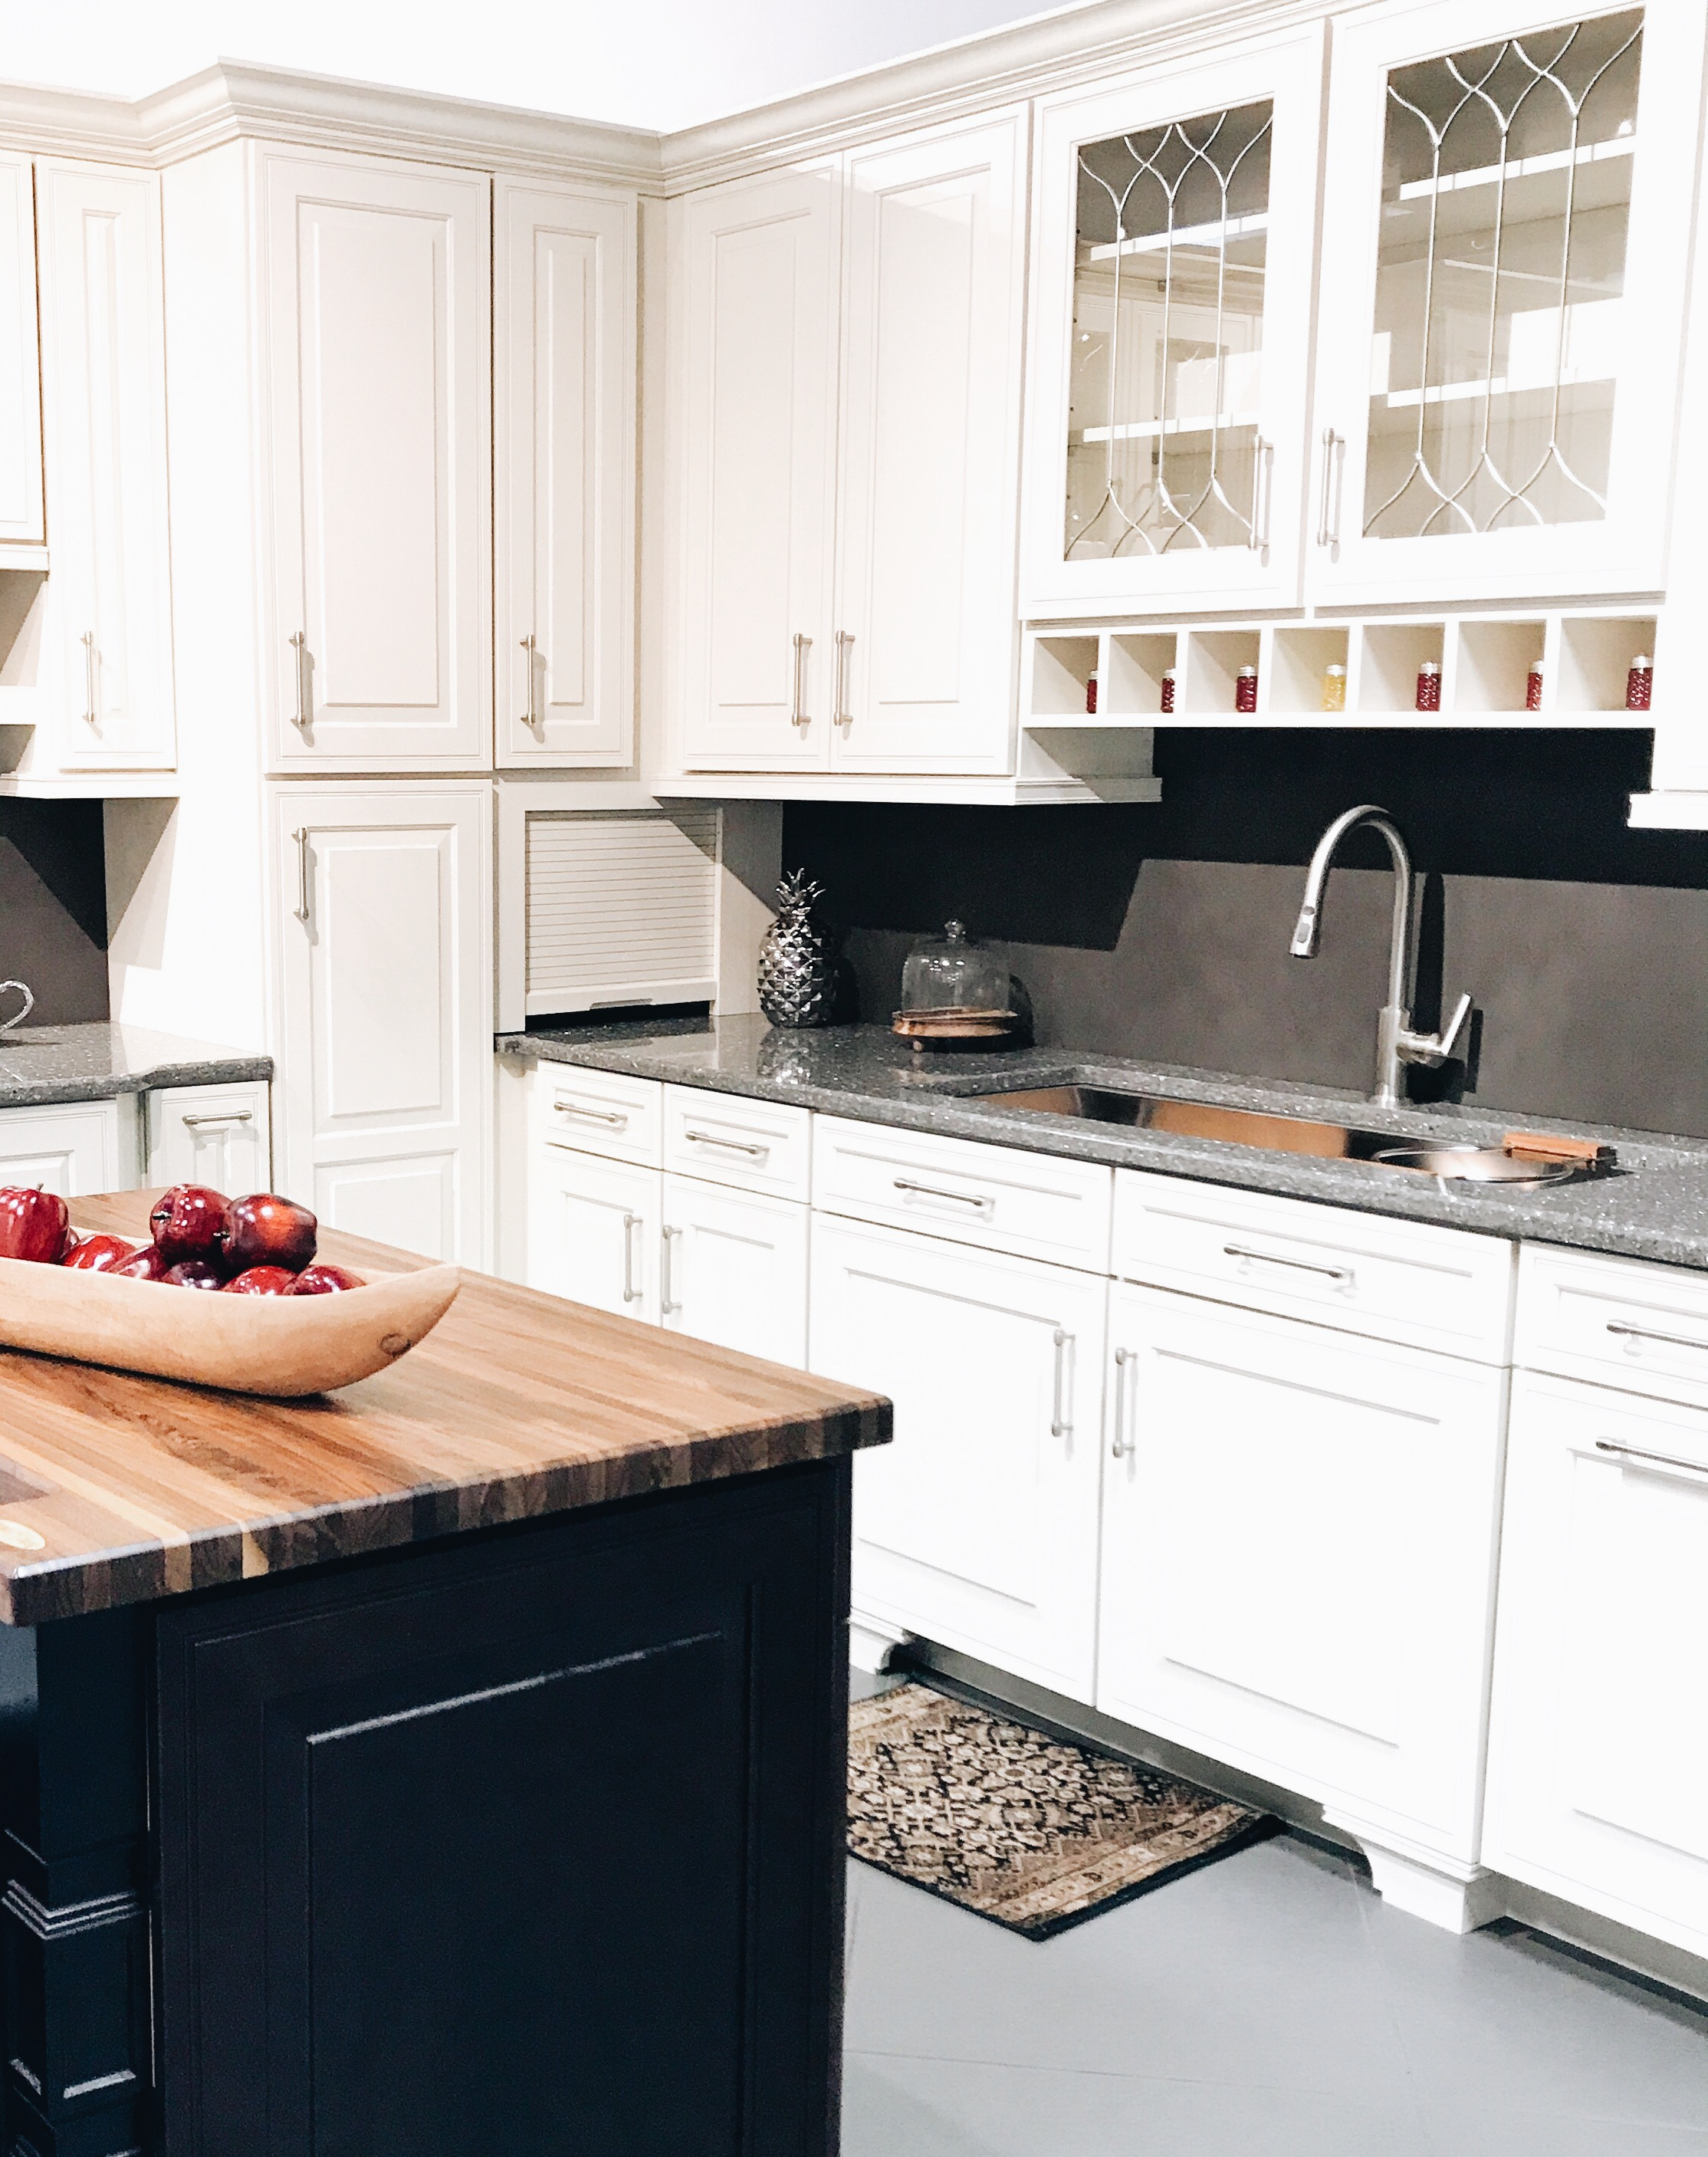 How to choose a kitchen from the company Orange 92